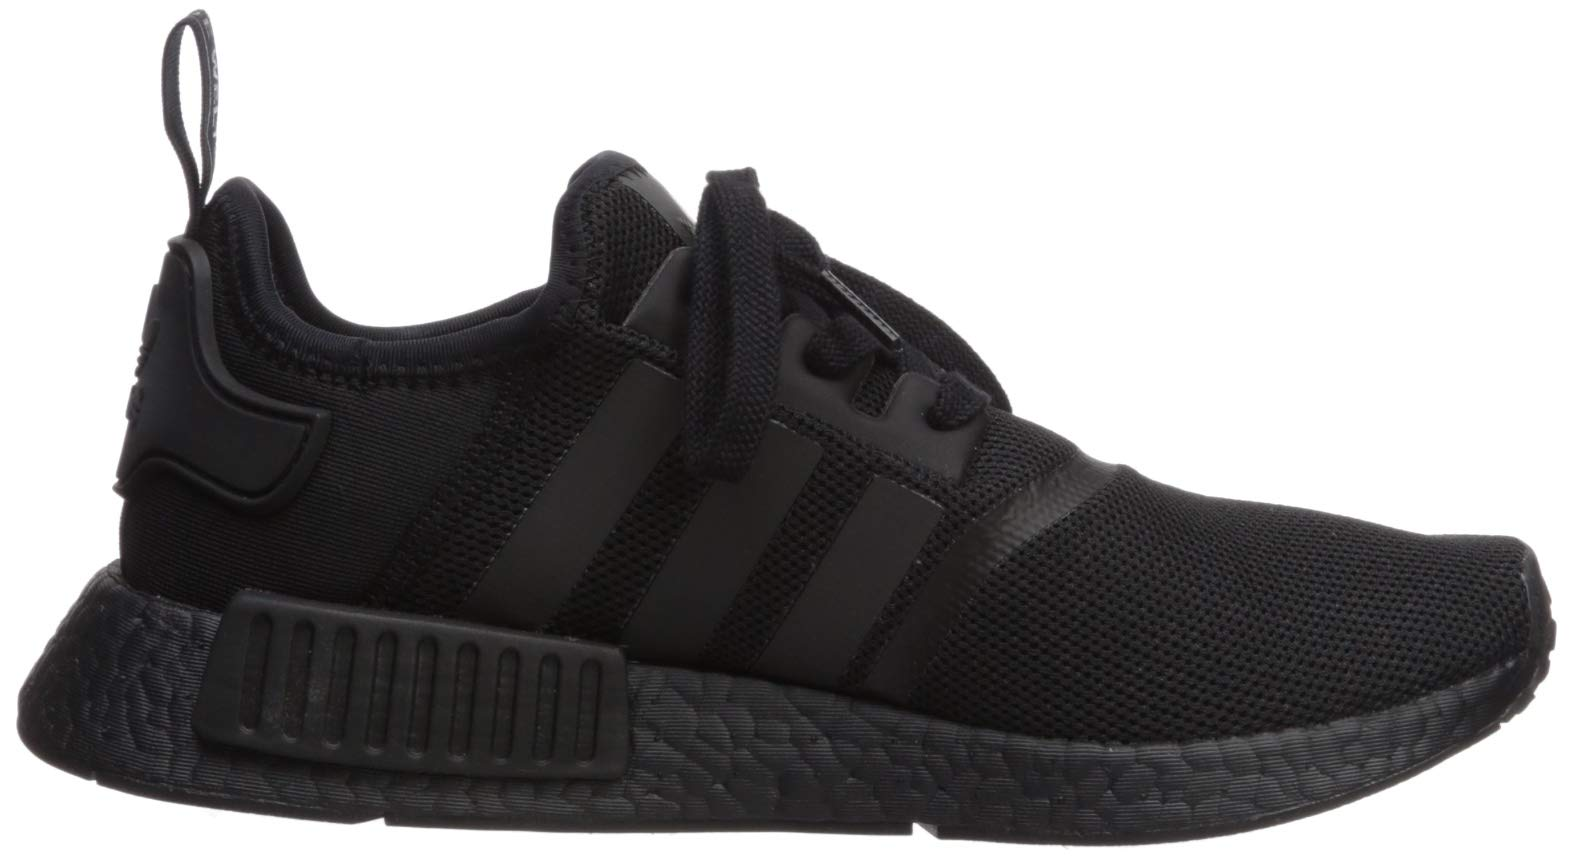 61Ft9osWbSL - adidas Men's NMD_r1 Trainers Black Size: 4.5 UK